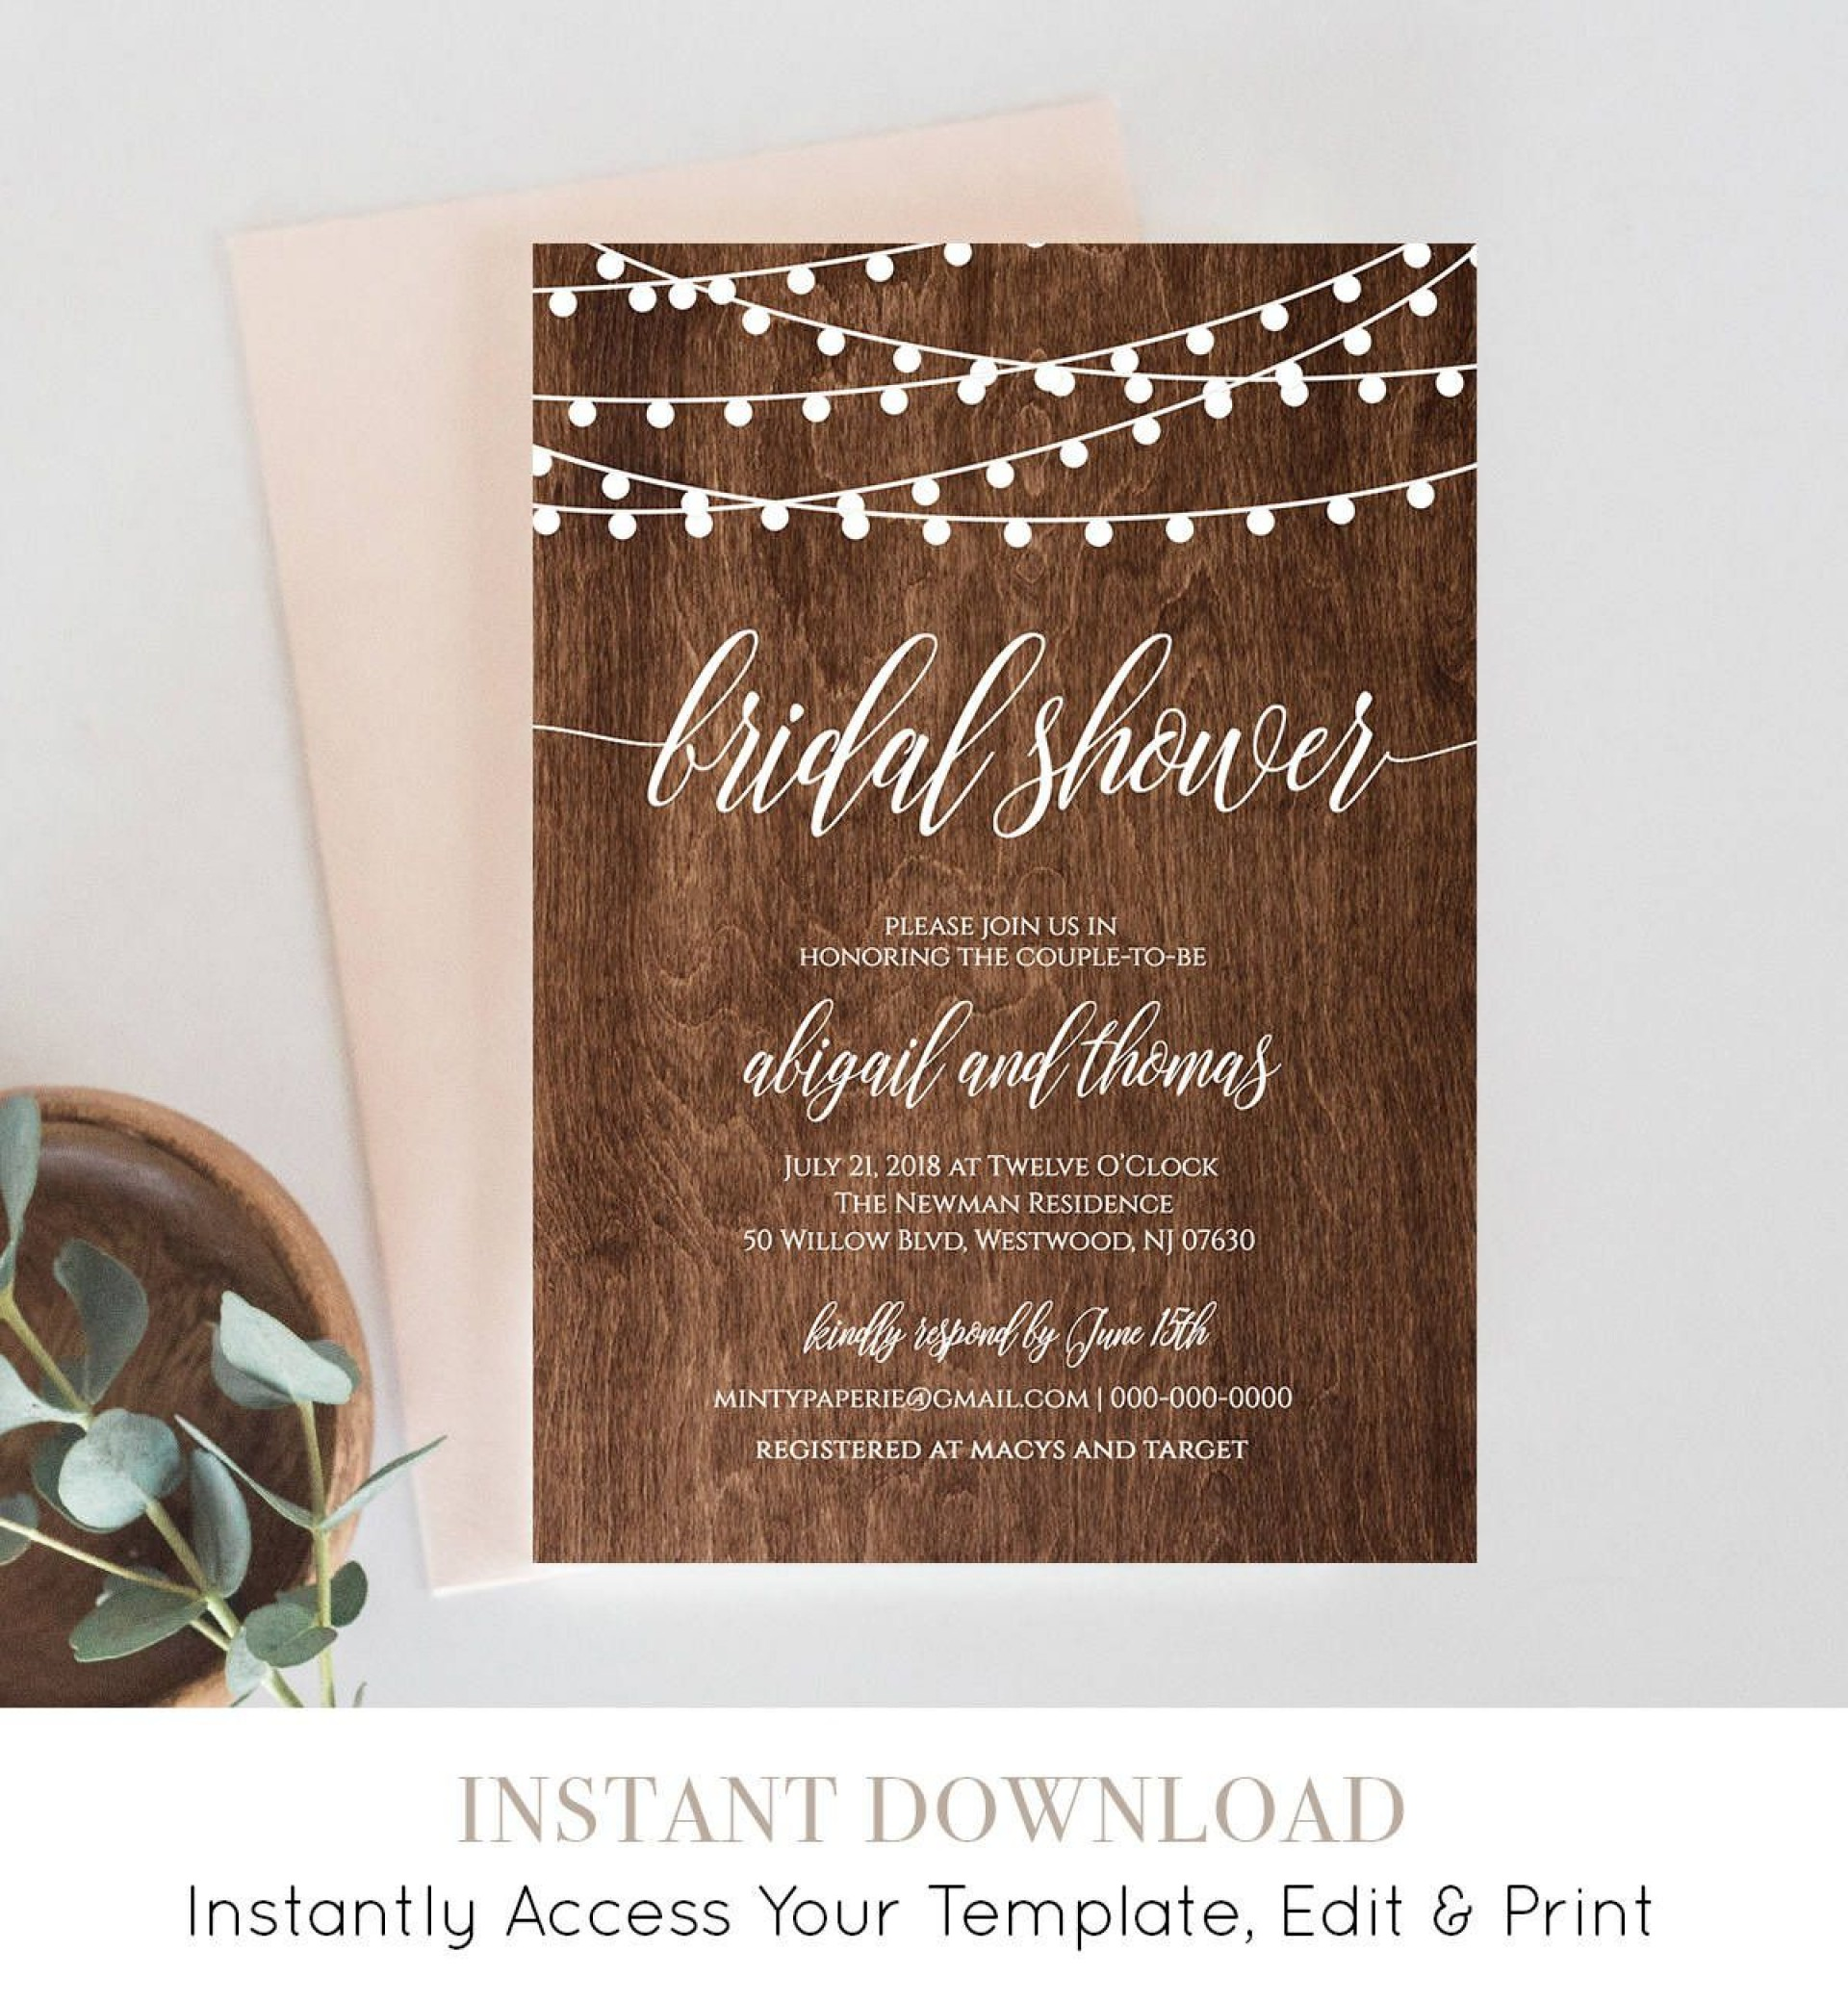 006 Surprising Free Couple Shower Invitation Template Download Sample 1920